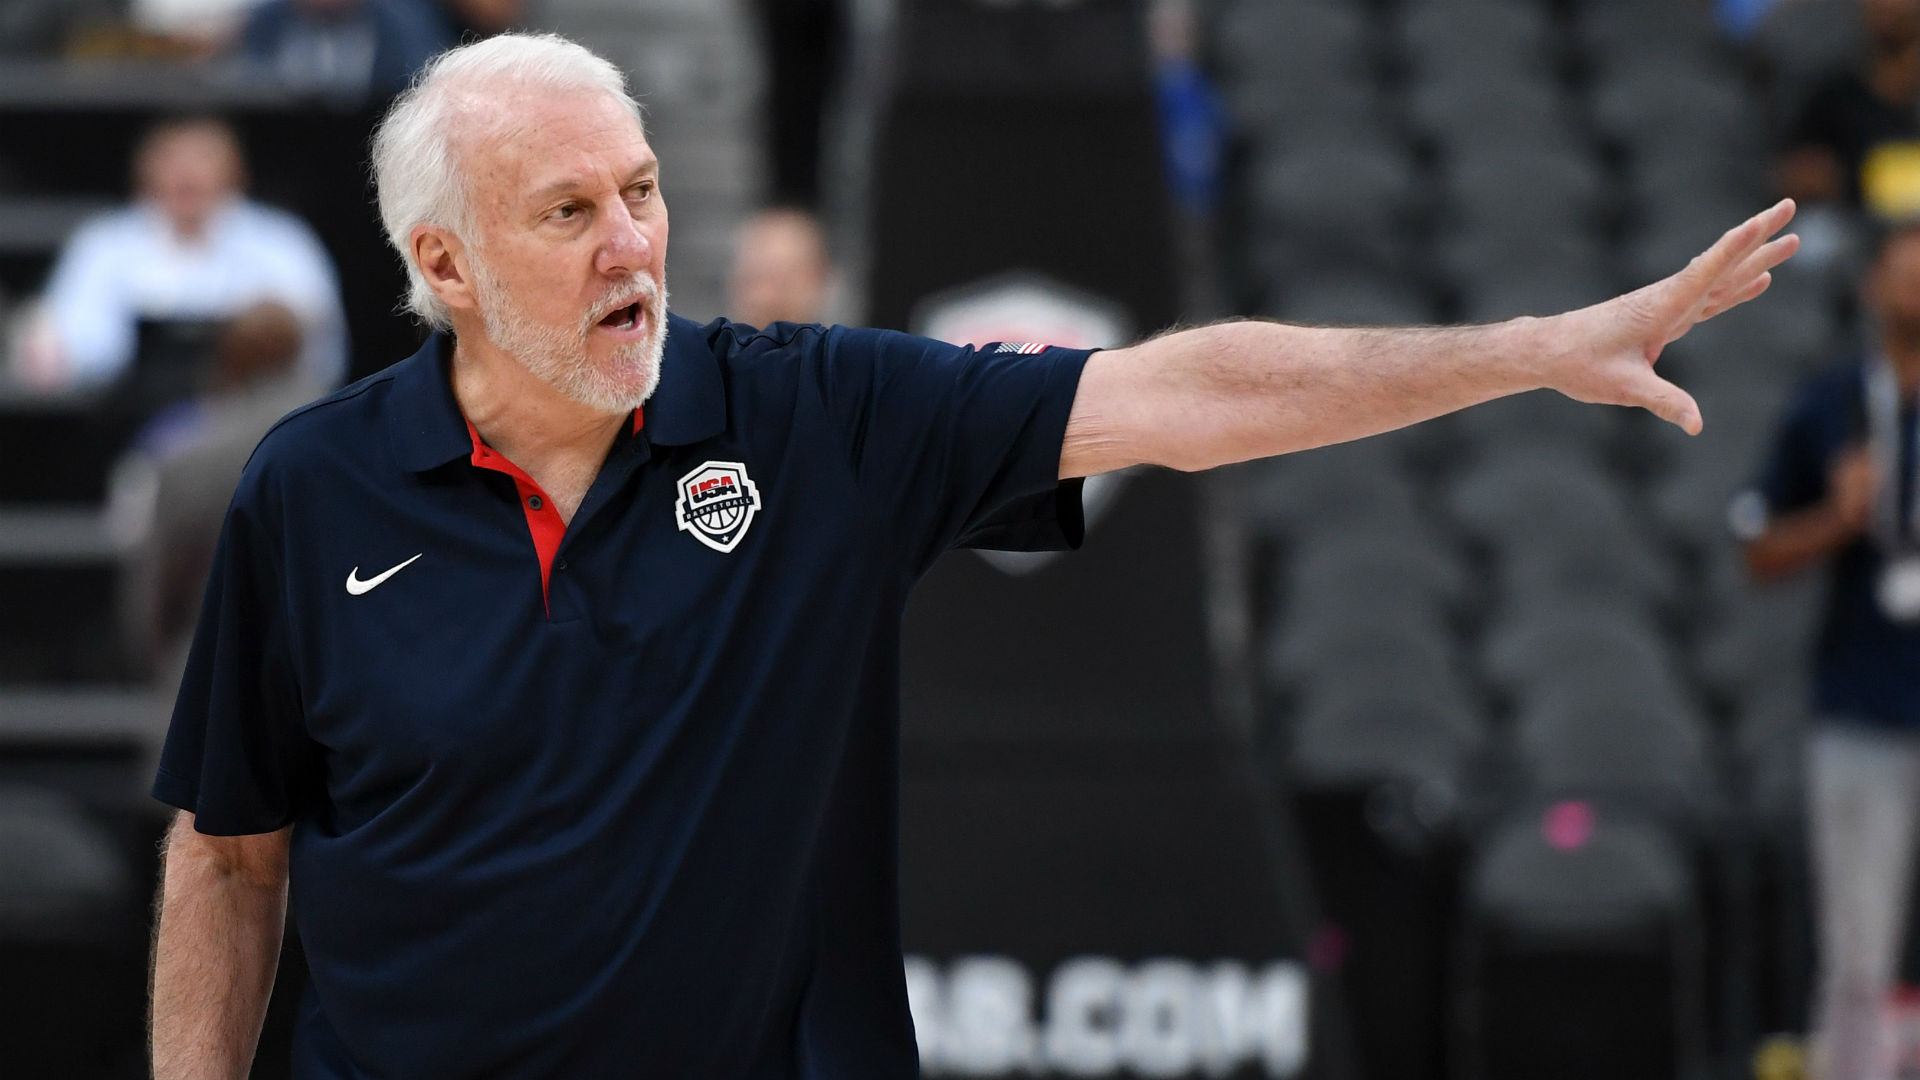 FIBA World Cup 2019: Team USA has 'become close in a short period of time,' Gregg Popovich says